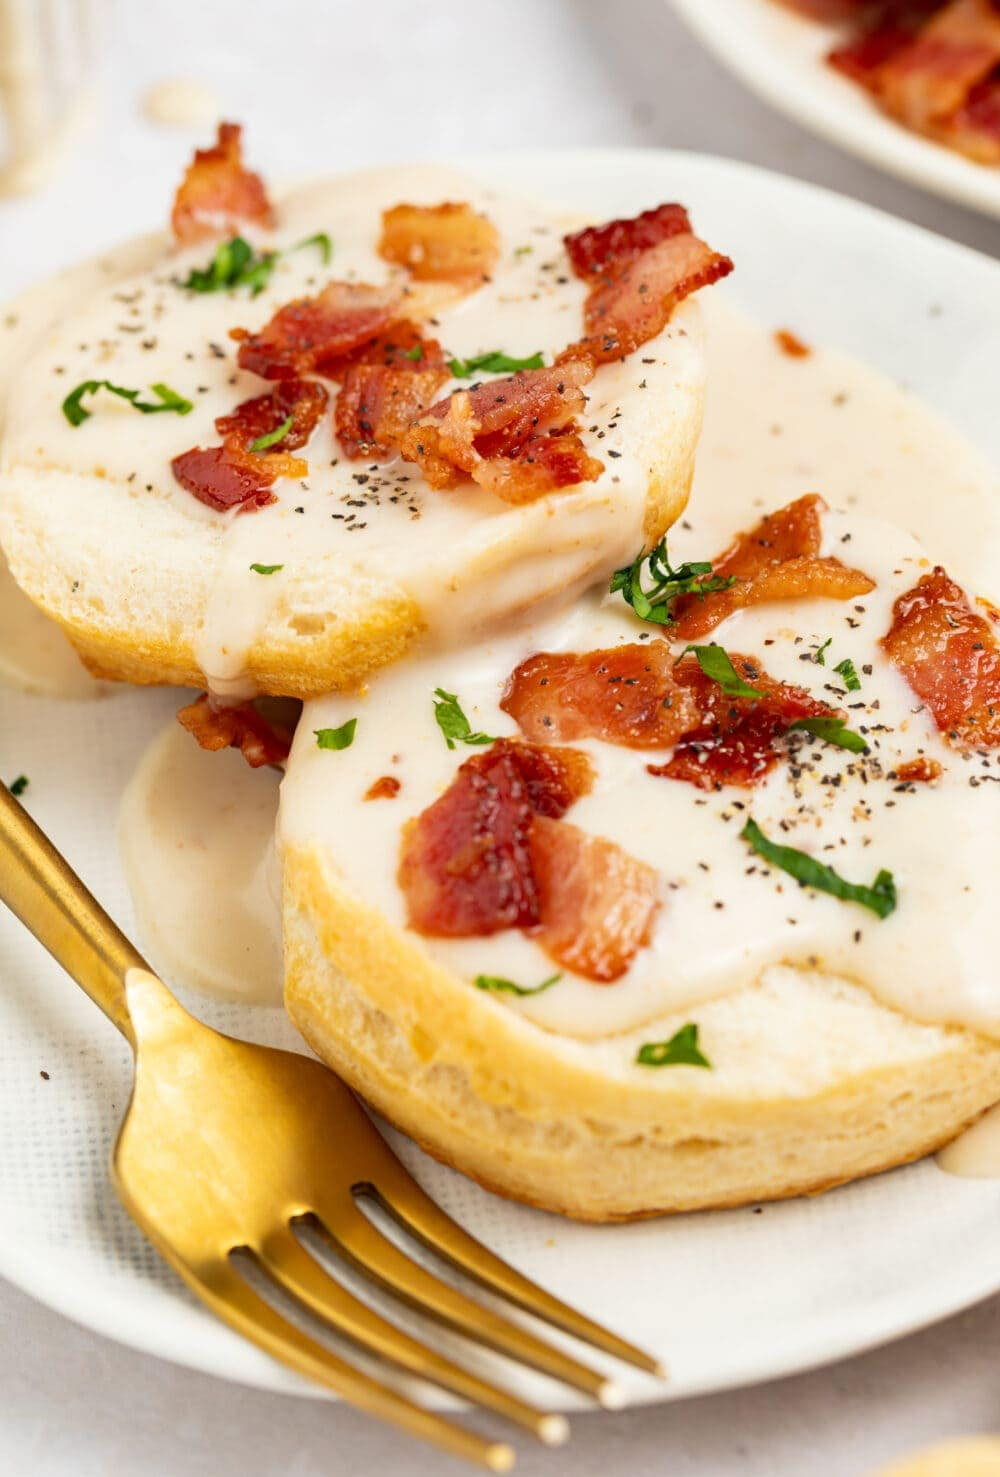 bacon gravy on biscuits with bacon pieces and chopped parsley on top